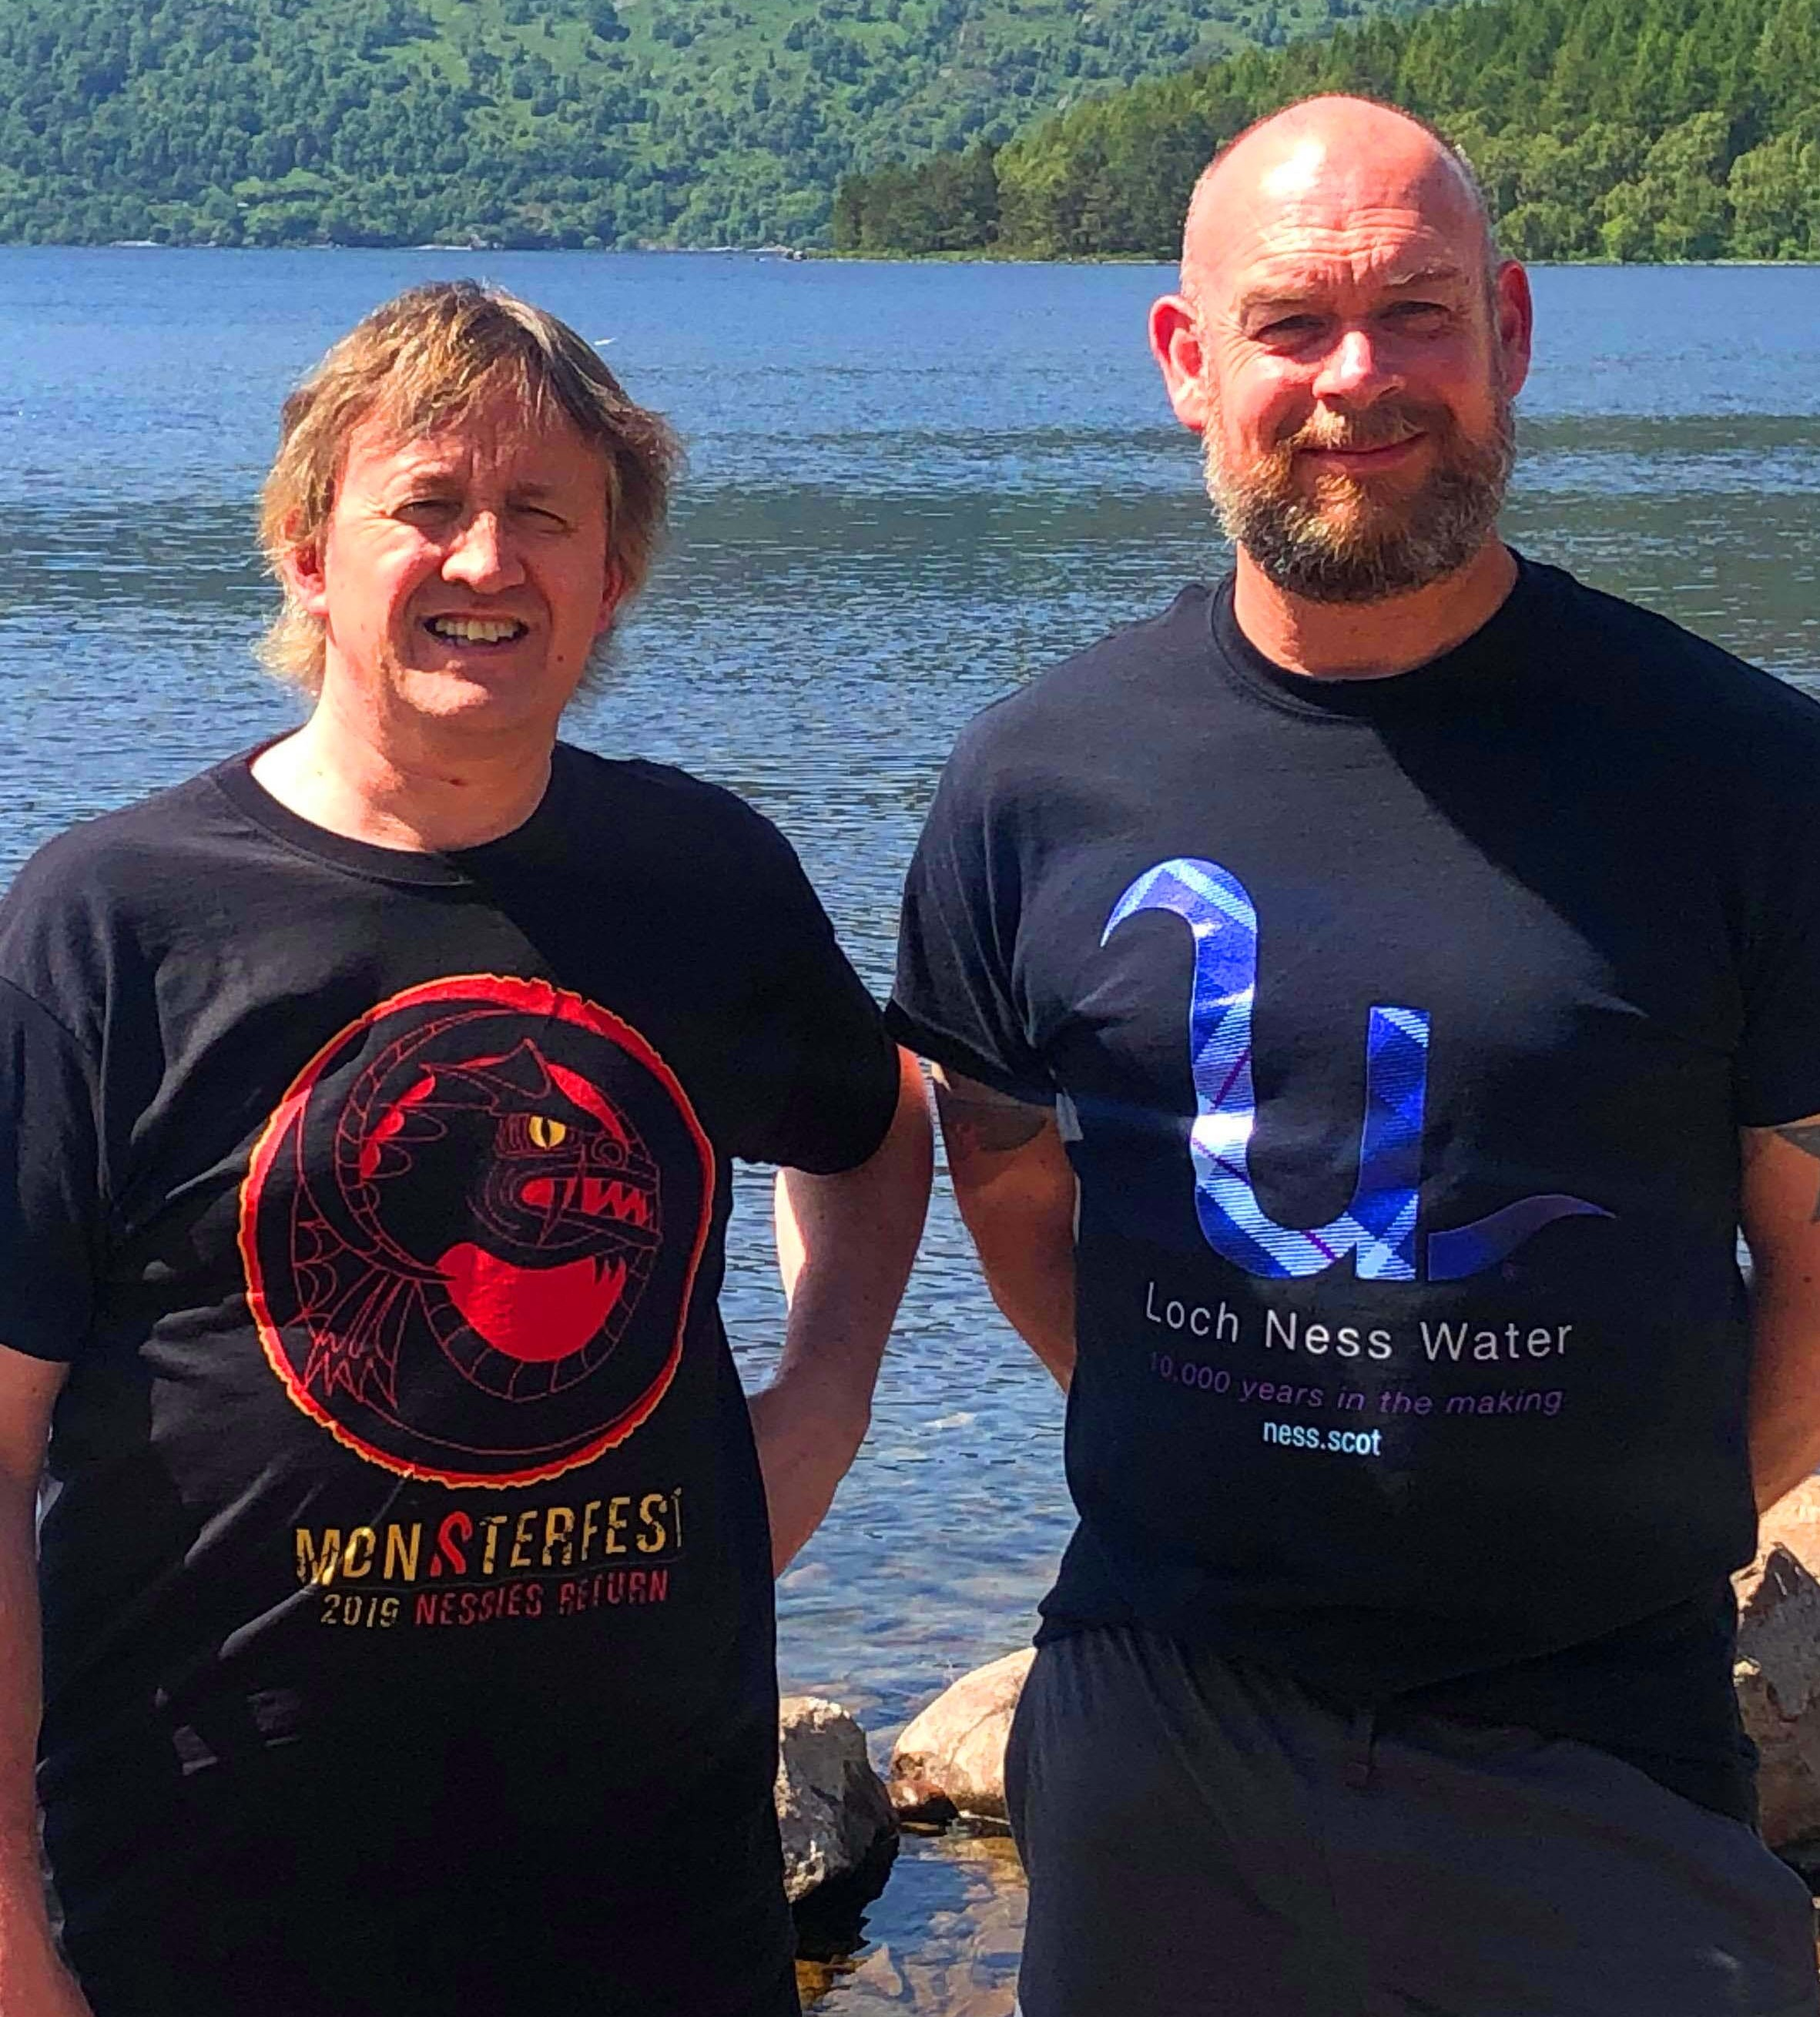 Monsterfest to make splash with Loch Ness Water as sponsor